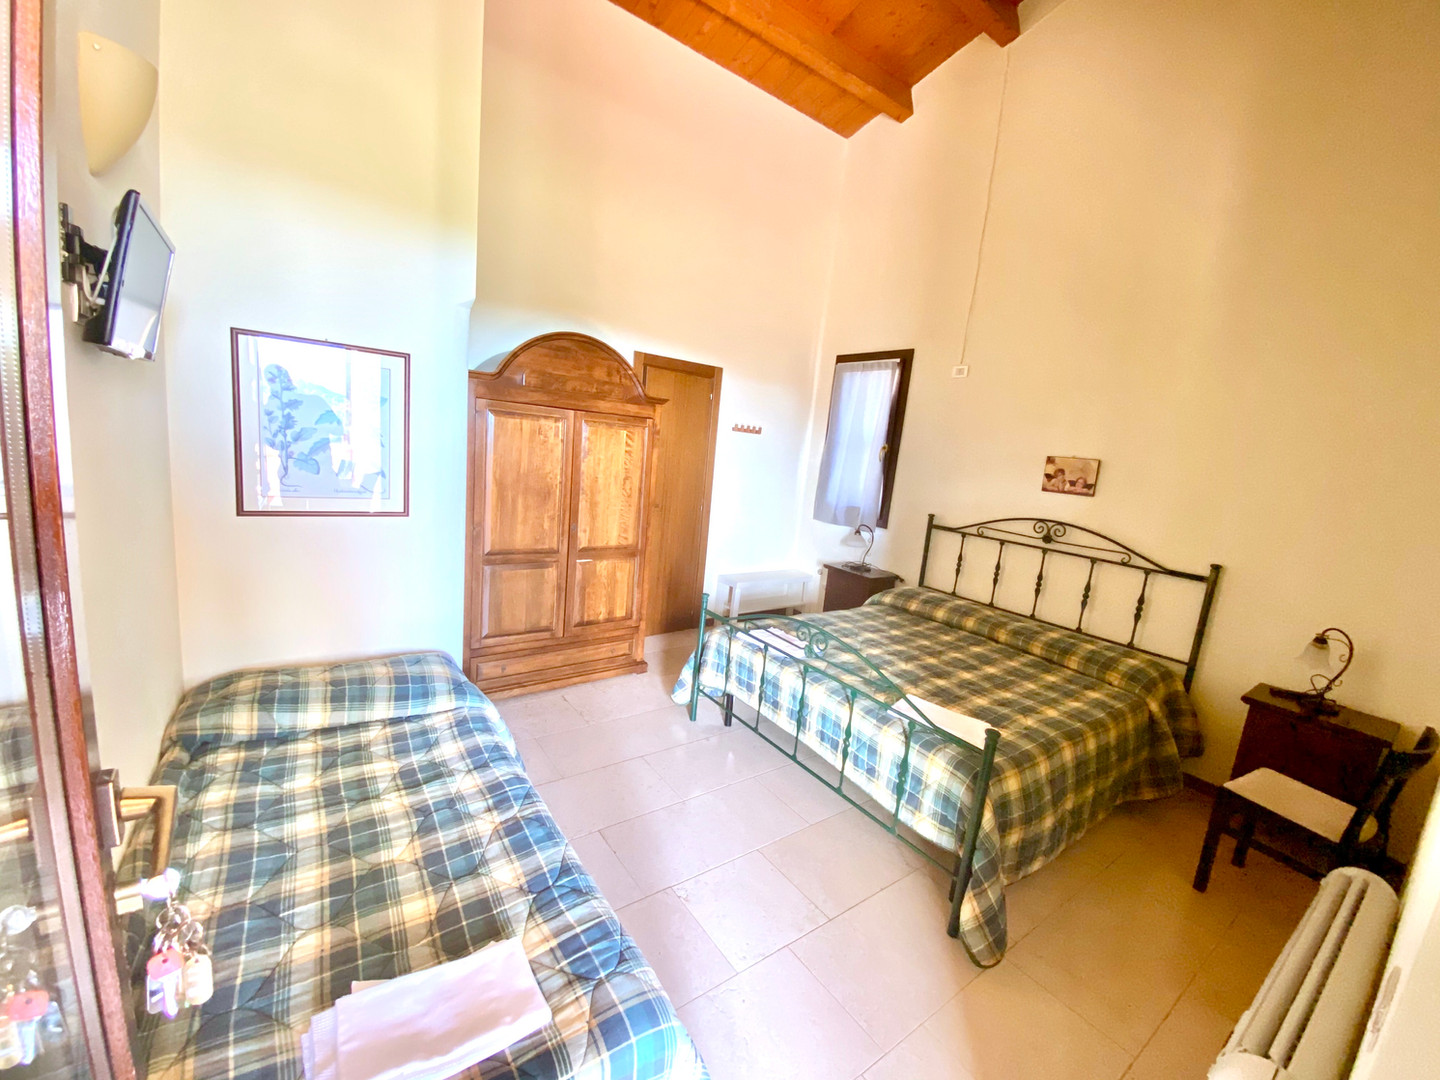 Agriturismo L'assiolo ⎮ Camere